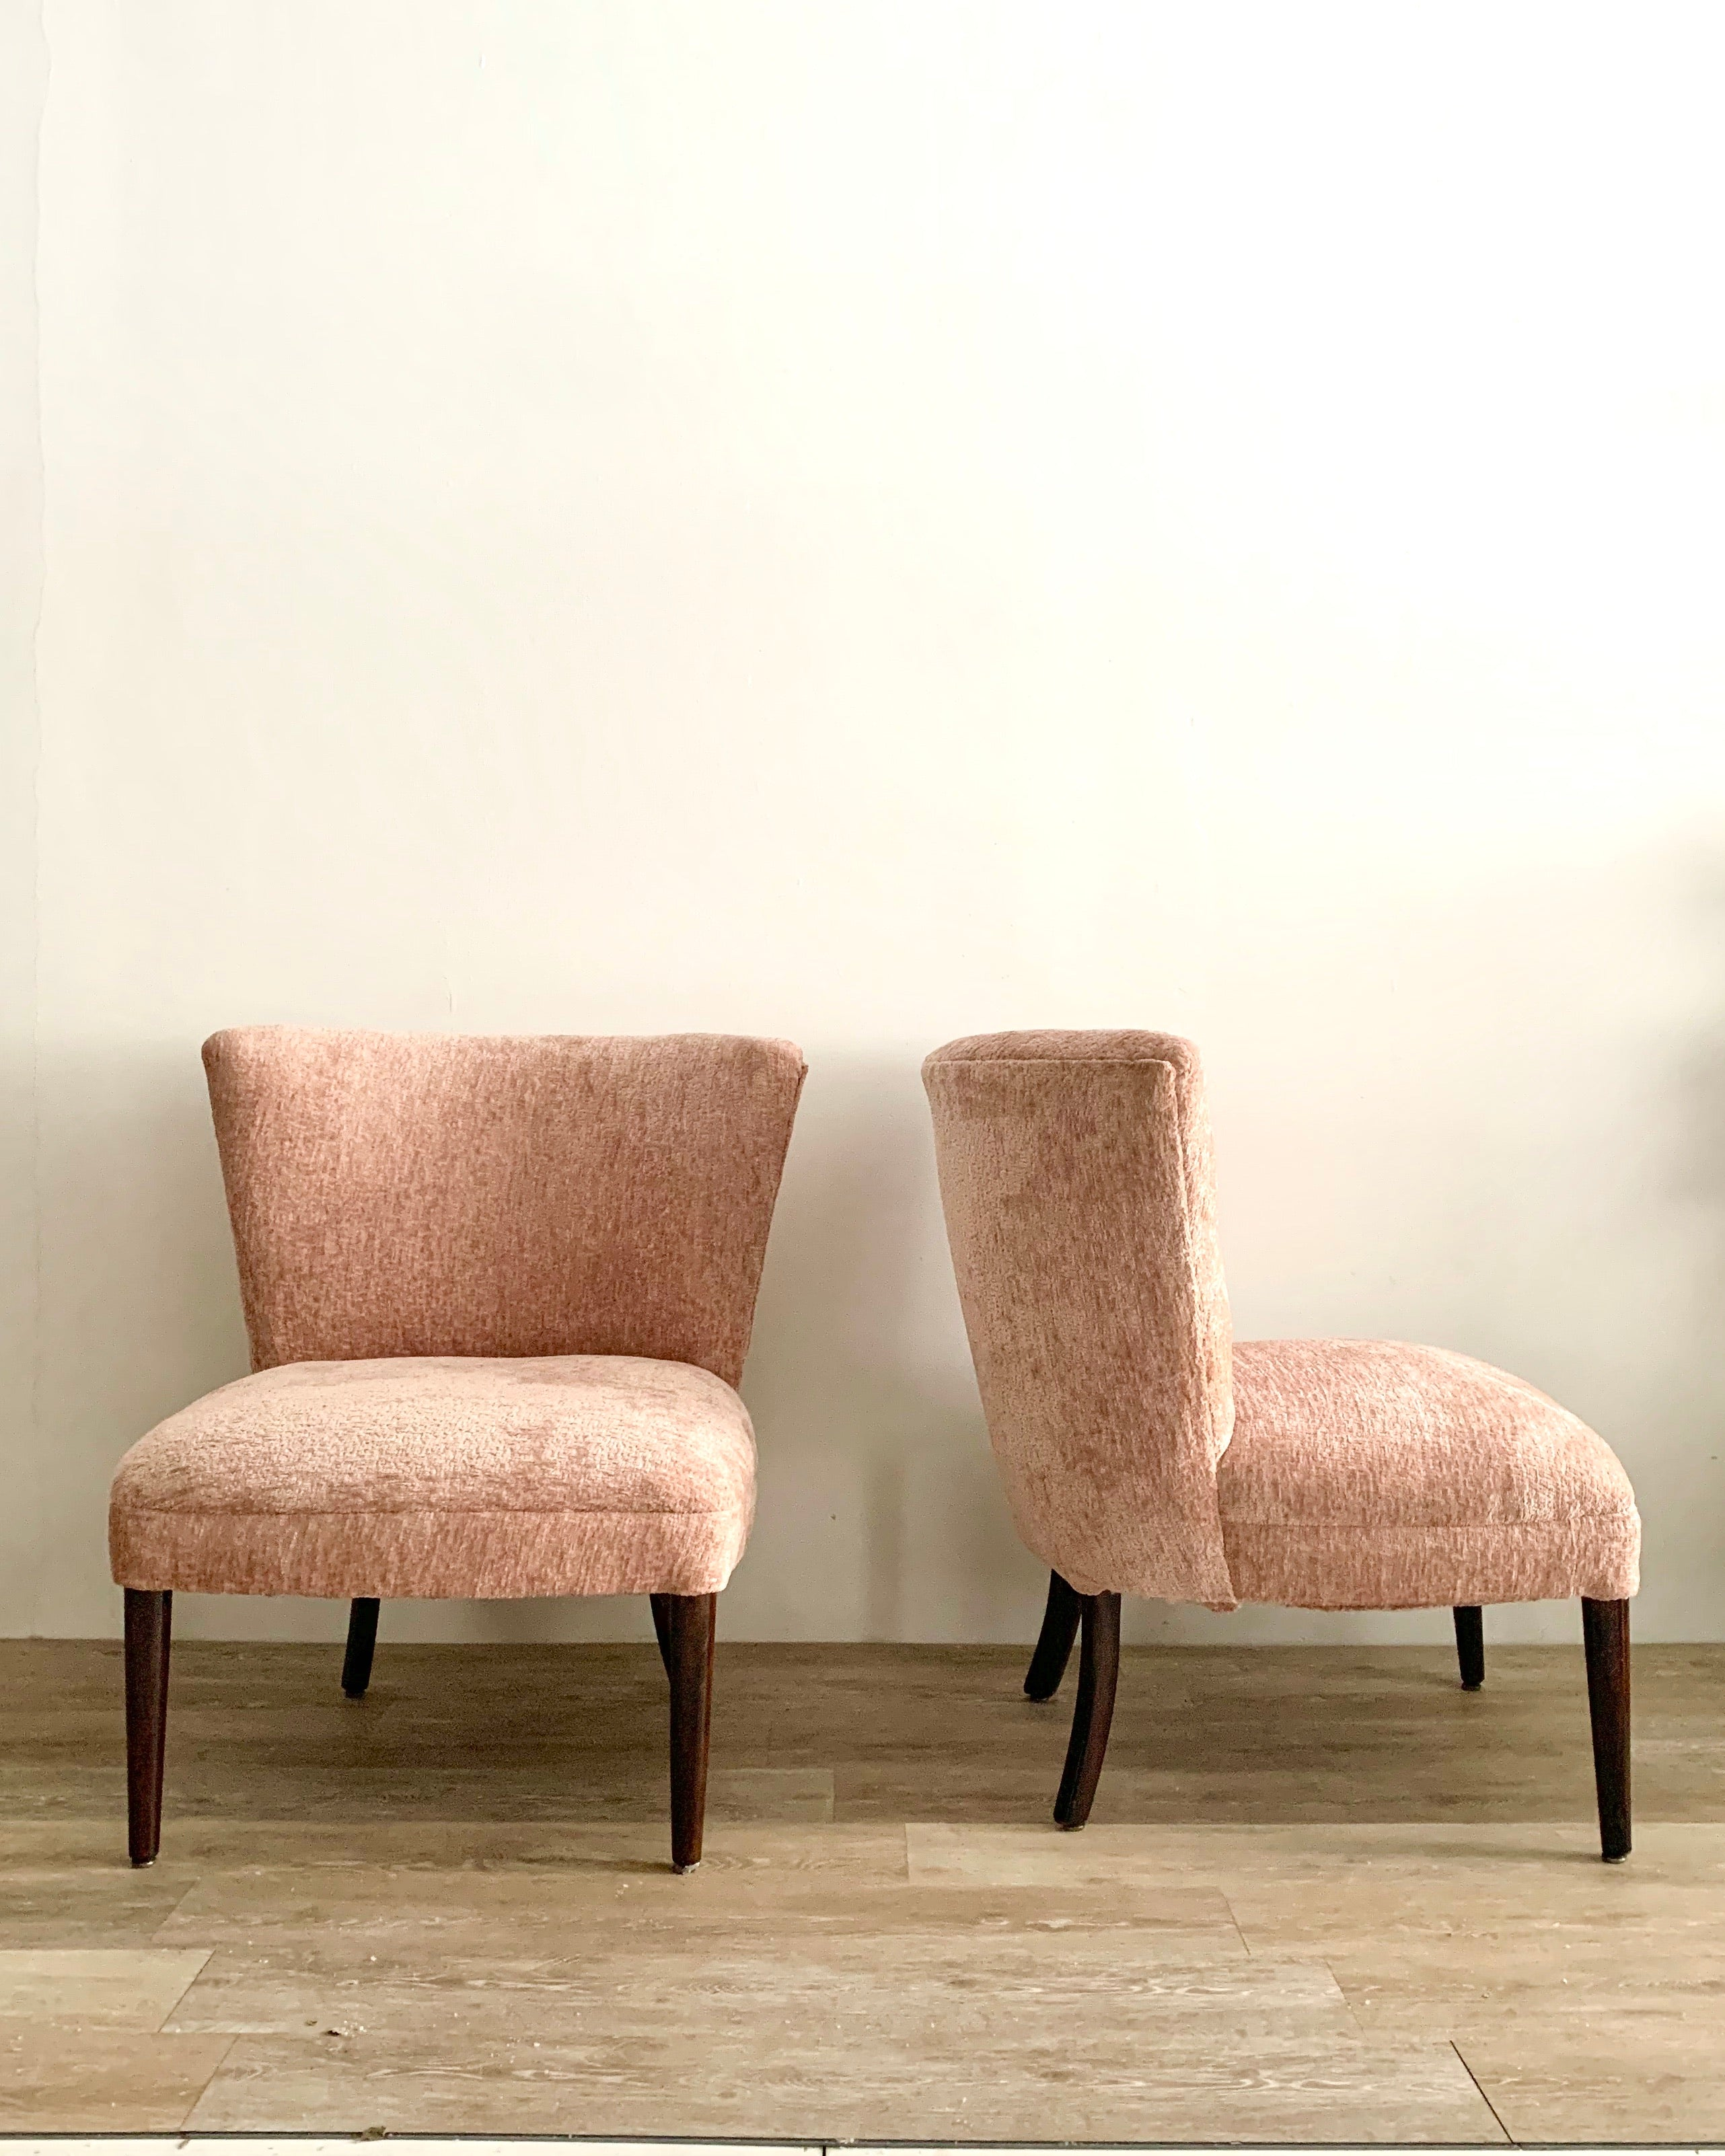 Vintage Slipper Chair Freshly Upholstered in Blush Chenille